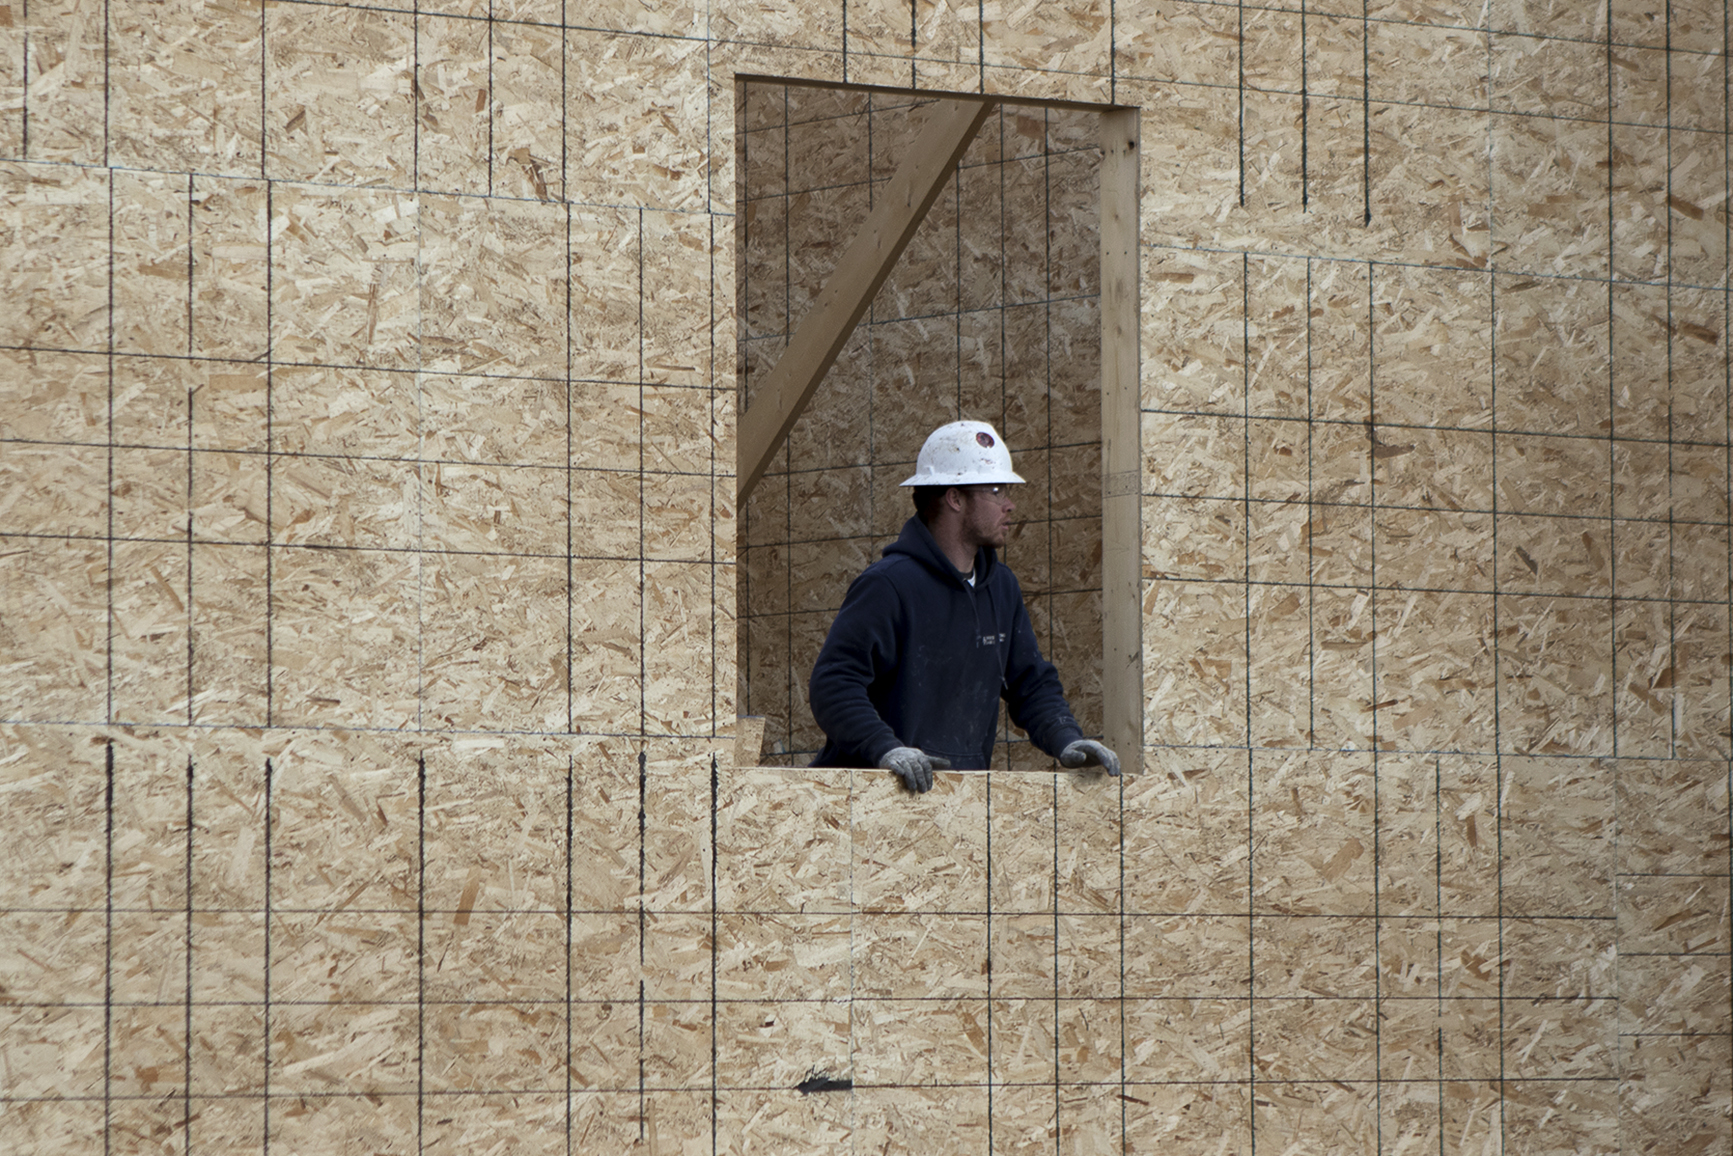 A worker with Van Ewing Constructions talks to another crew member through a window Wednesday afternoon at while working on the new dorms at Gillette College.